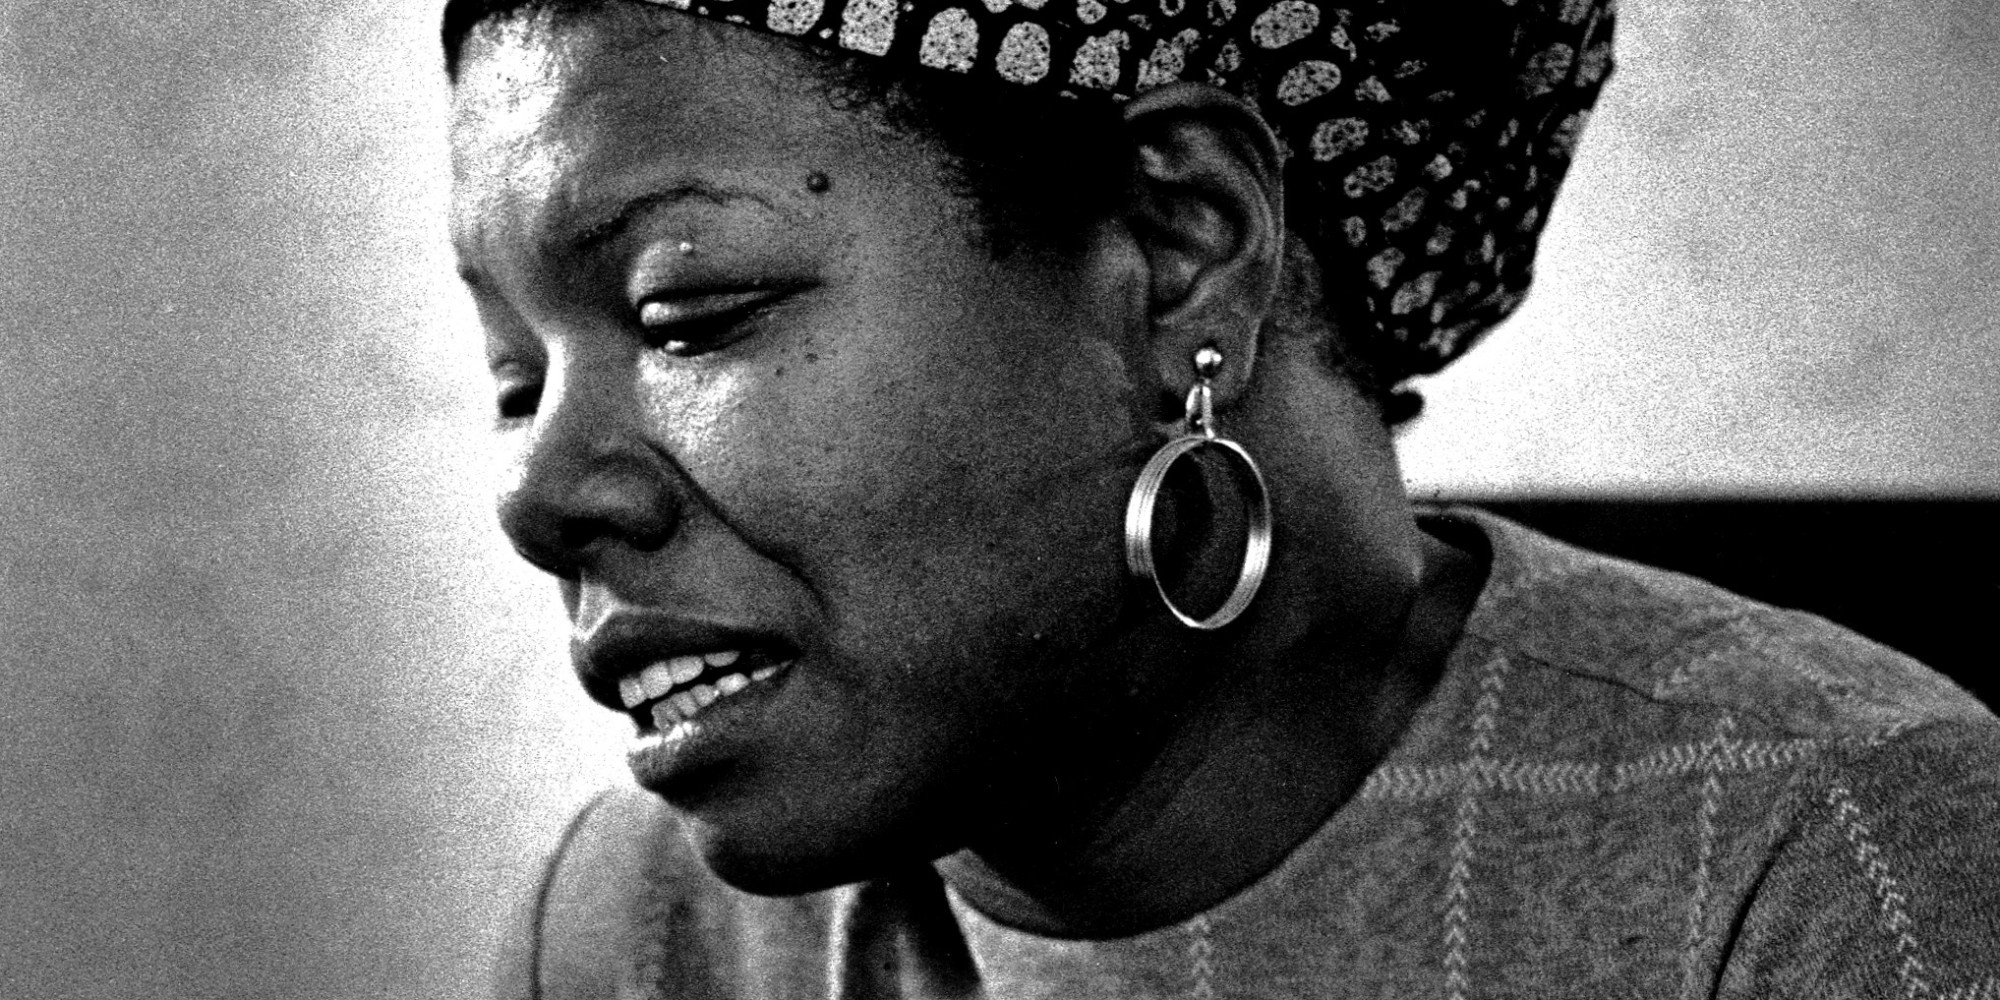 maya angelou at rutgers She was the heroine of every black girl's fantasy, the protagonist in tale, and an epic of her own making she lived life overflowing the first time i heard the deep intonations of maya.